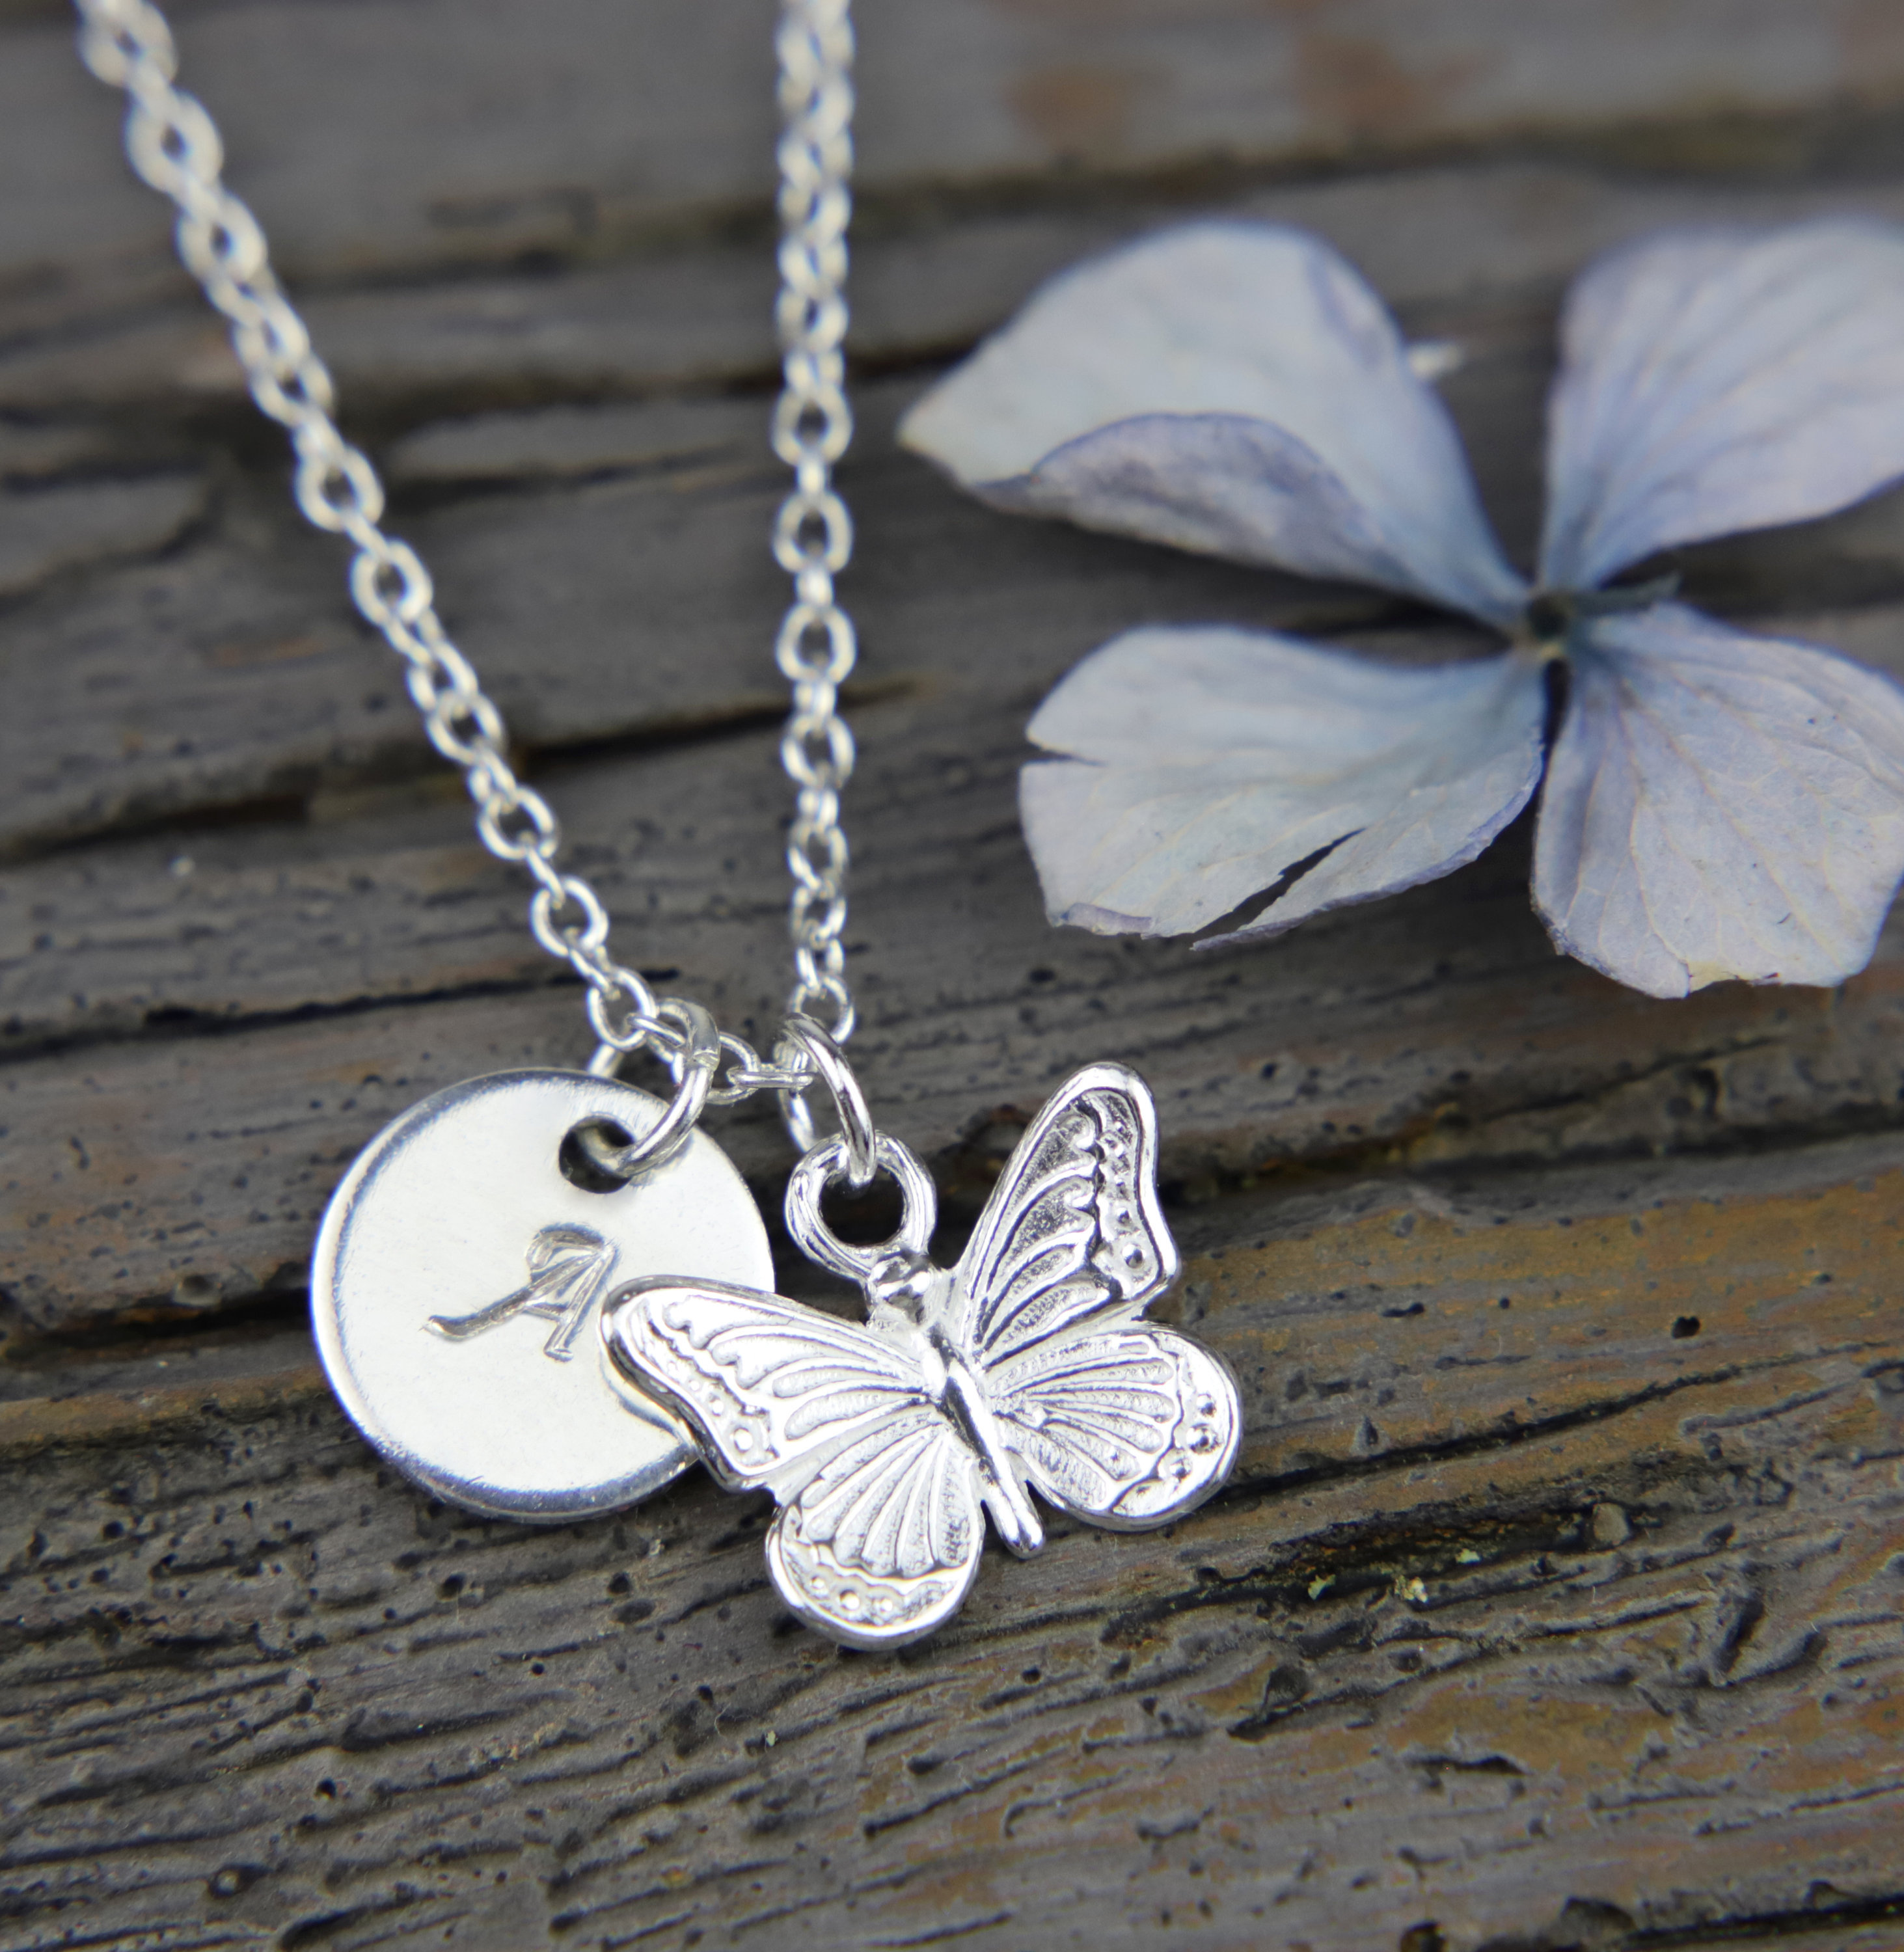 Personalised Butterfly Necklace, Silver Pendant, Tiny Butterfly, Initial  Necklace, Monogram Pendant,Simple Butterfly,Gift for Girls,Mum Gift